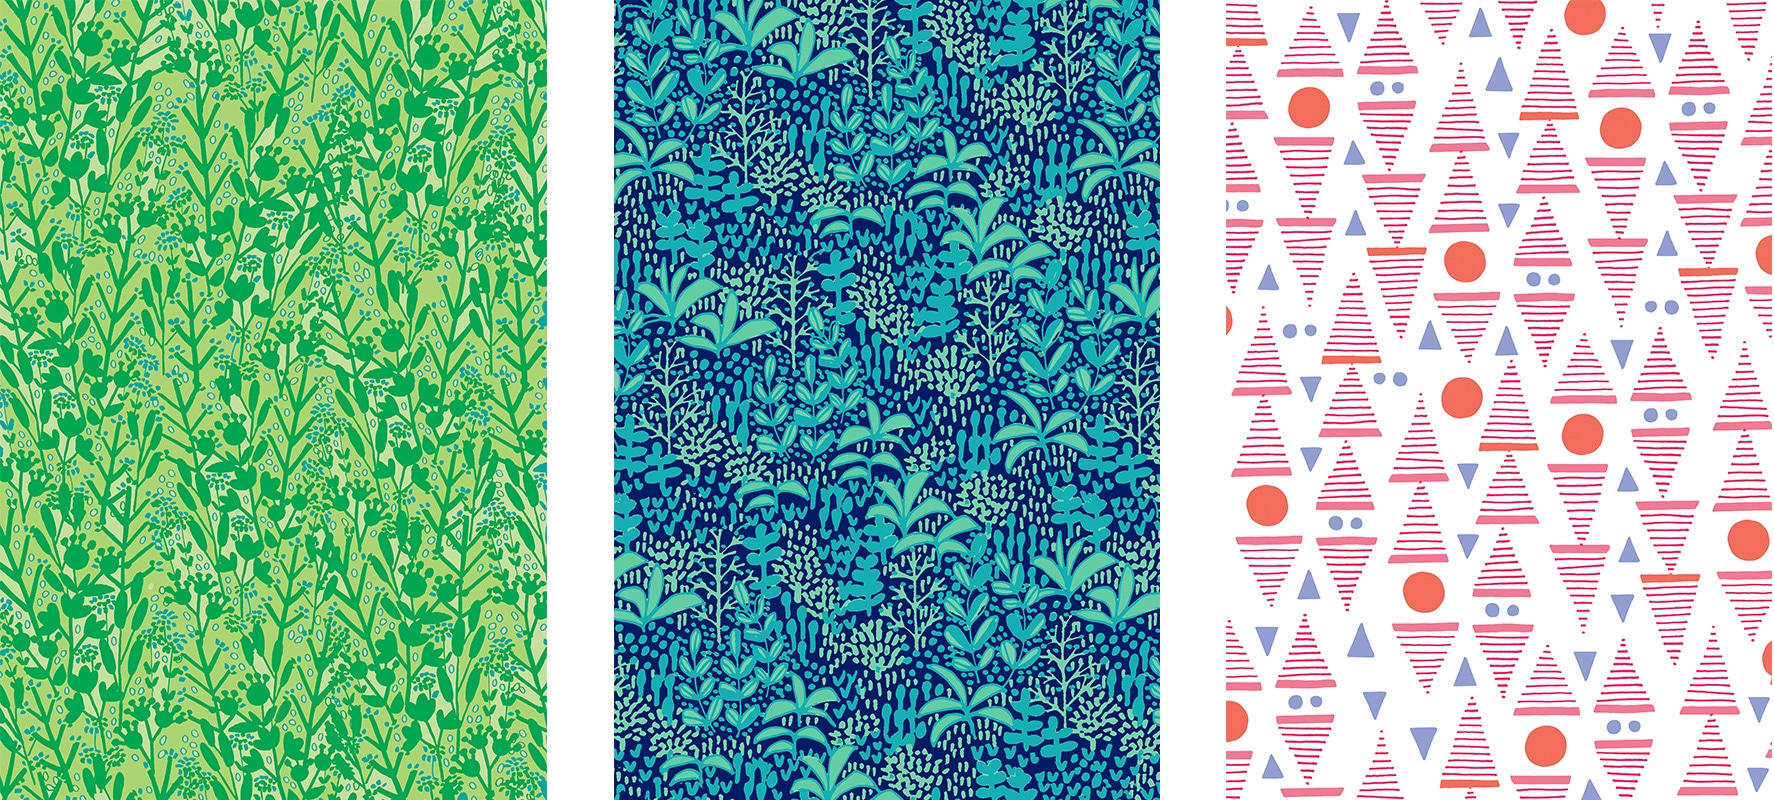 In the Field, Jungle Life and Mountains. Pattern design by Katja Ollendorff.